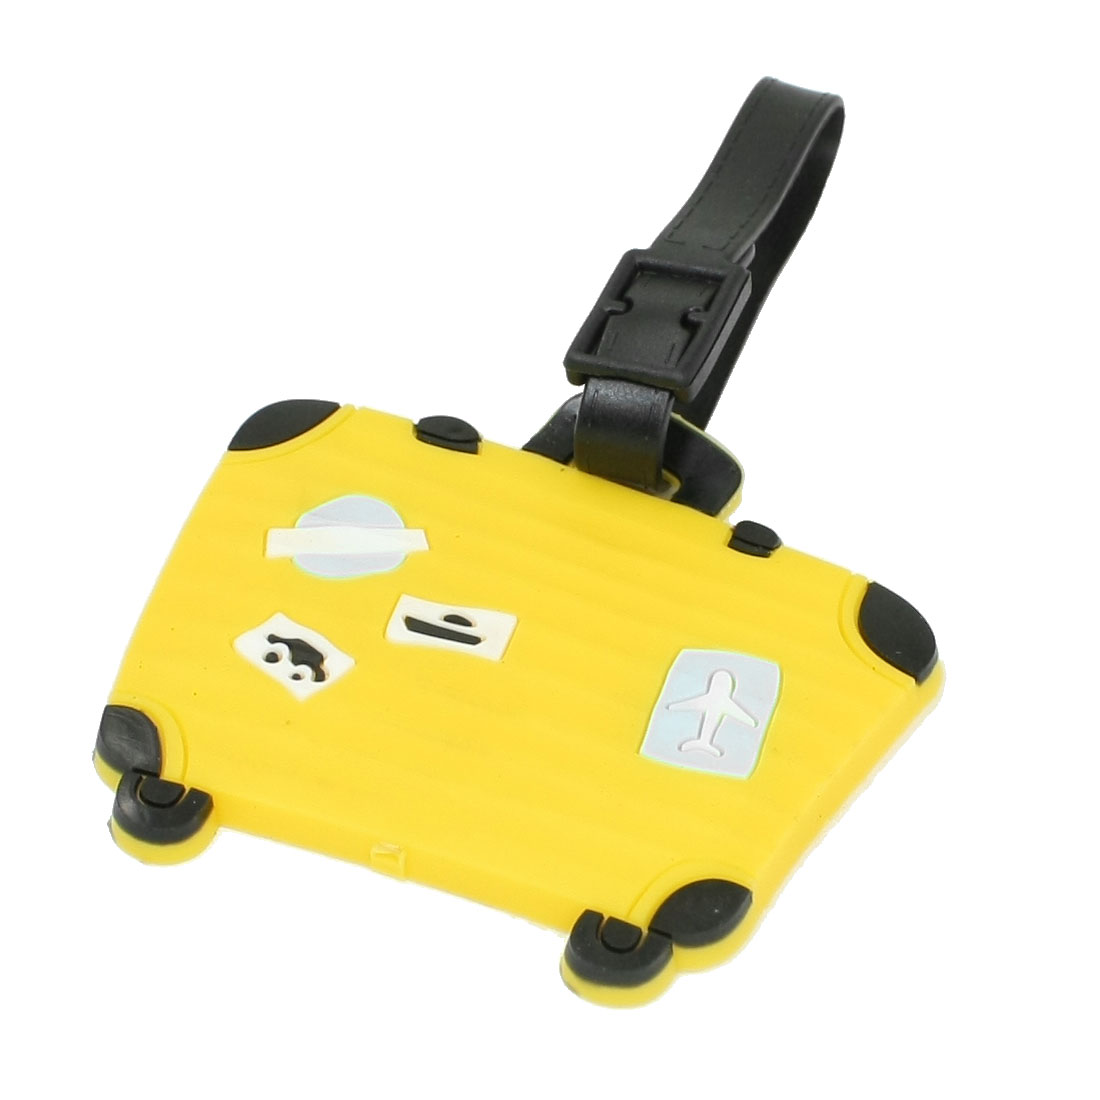 Luggage Shape Travel Suitcase Baggage Tag Name ID Label Yellow w Strap